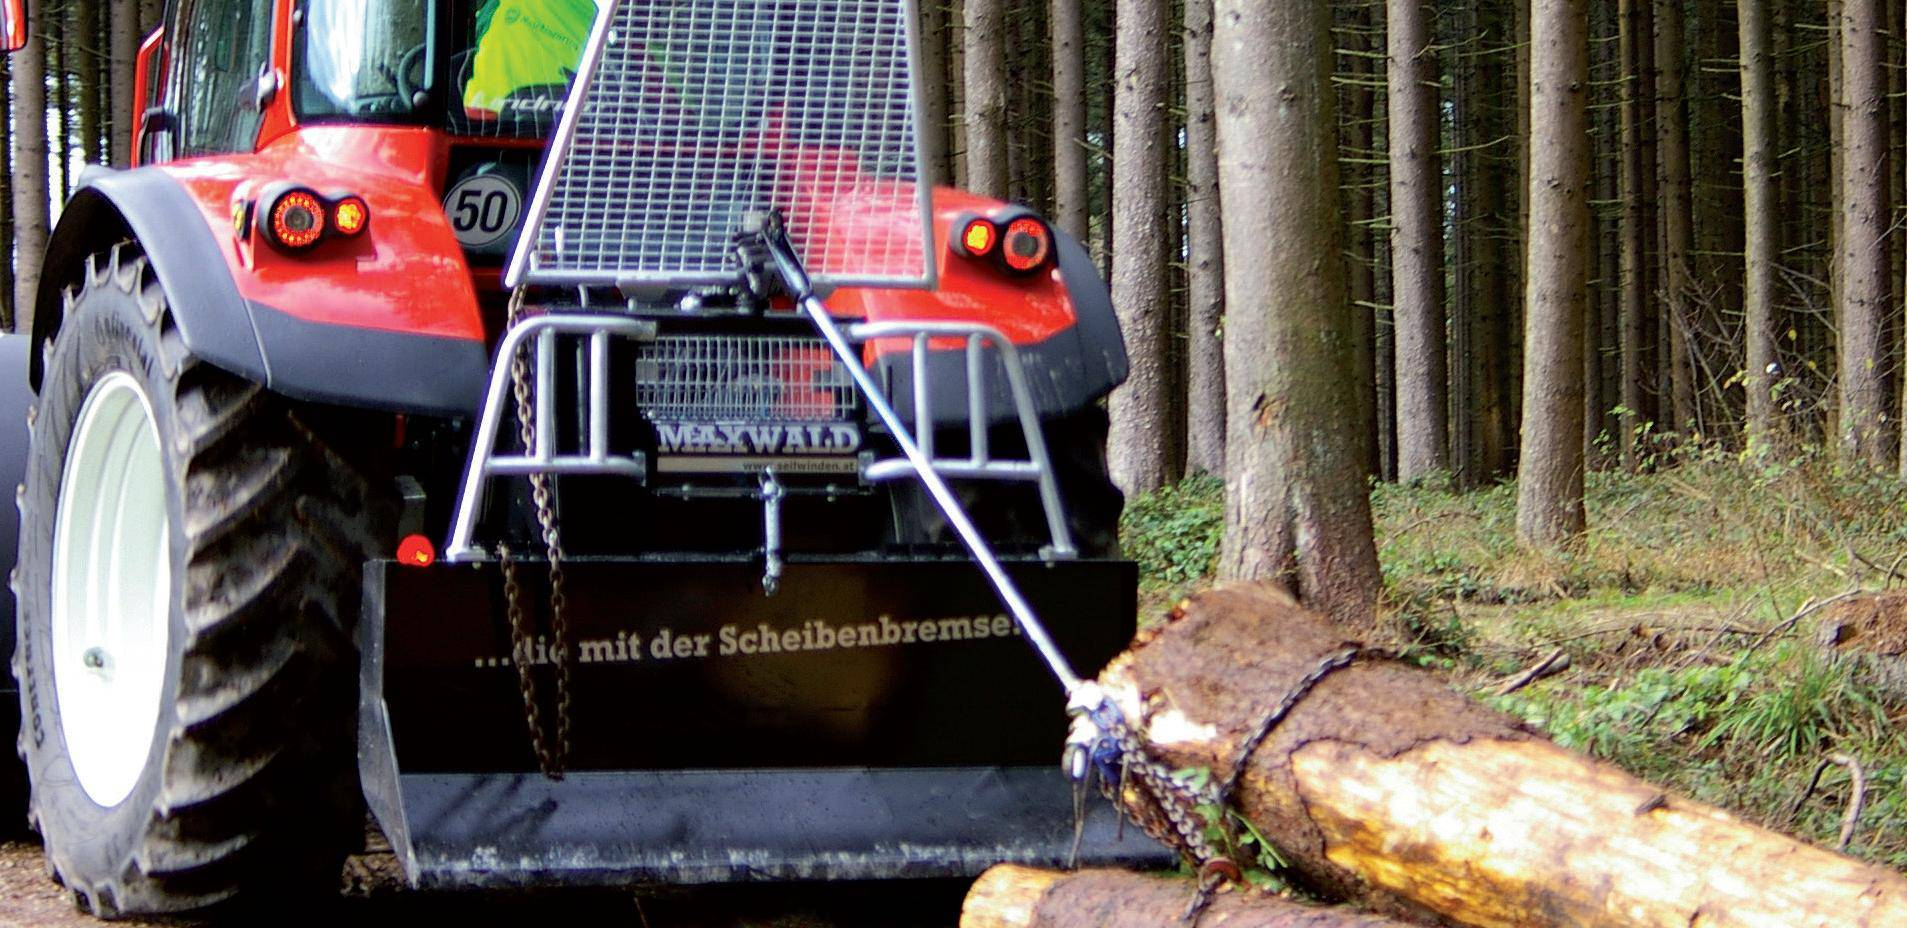 Maxwald Forest Winches